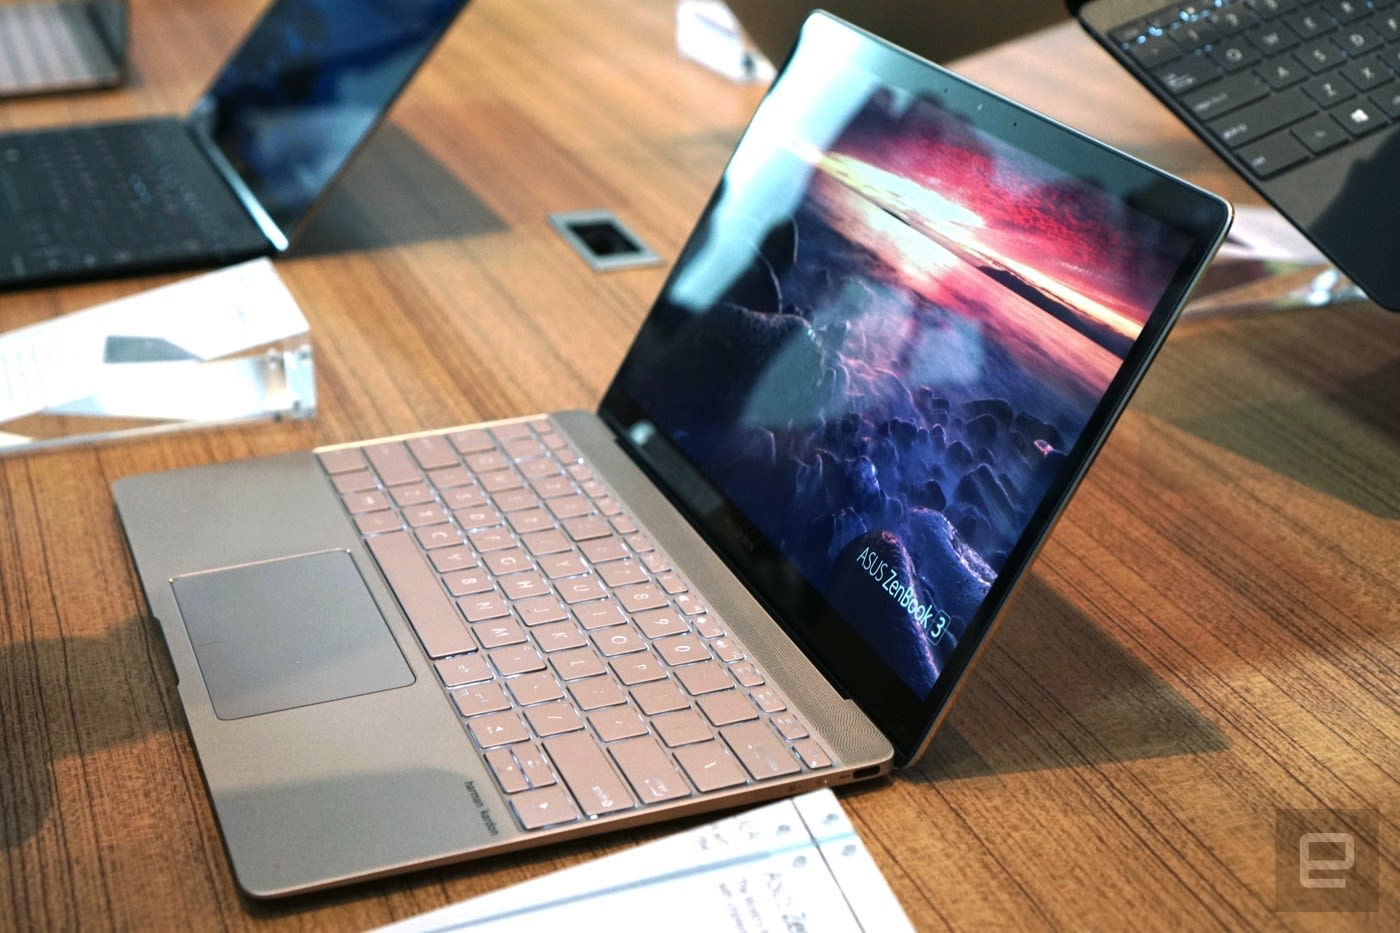 Asus Zenbook 3 Is Thinner Lighter And Faster Than The